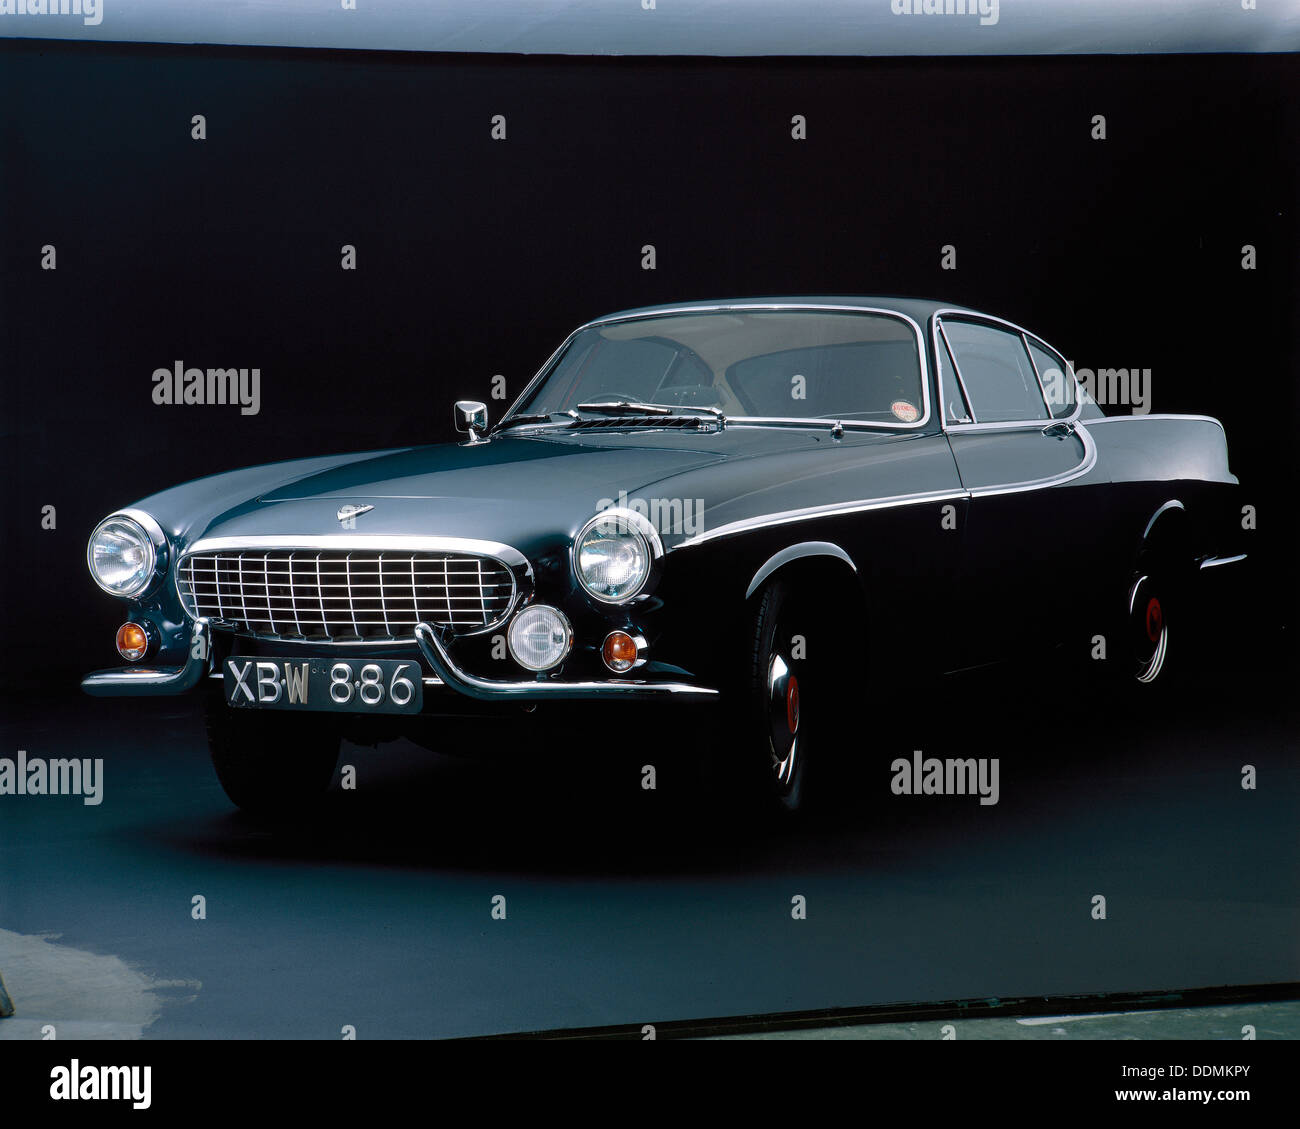 A 1962 Volvo P 1800S. - Stock Image